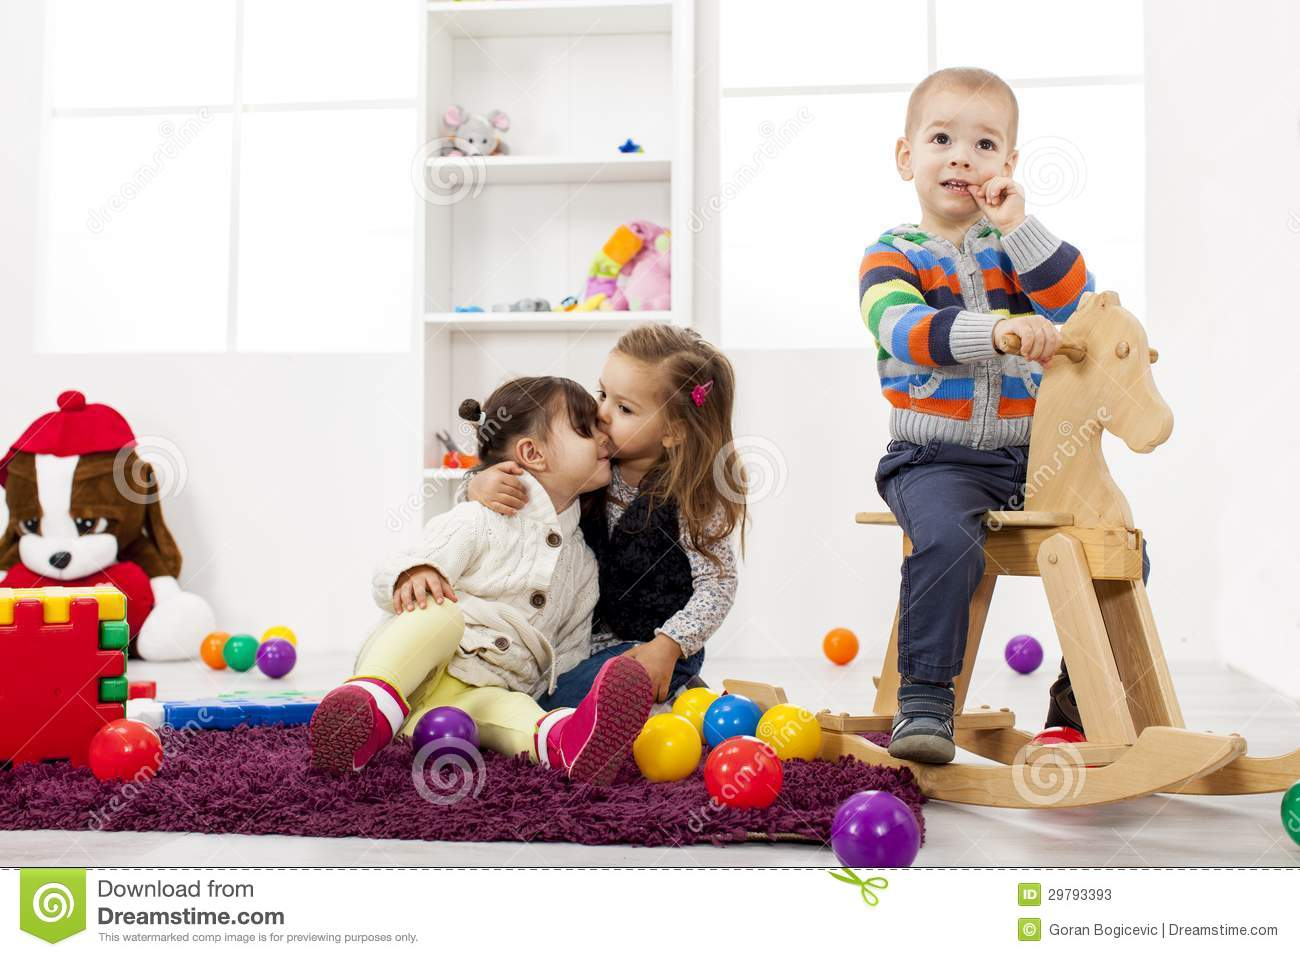 Childcare Floor Plans Kids Playing In The Room Stock Photos Image 29793393